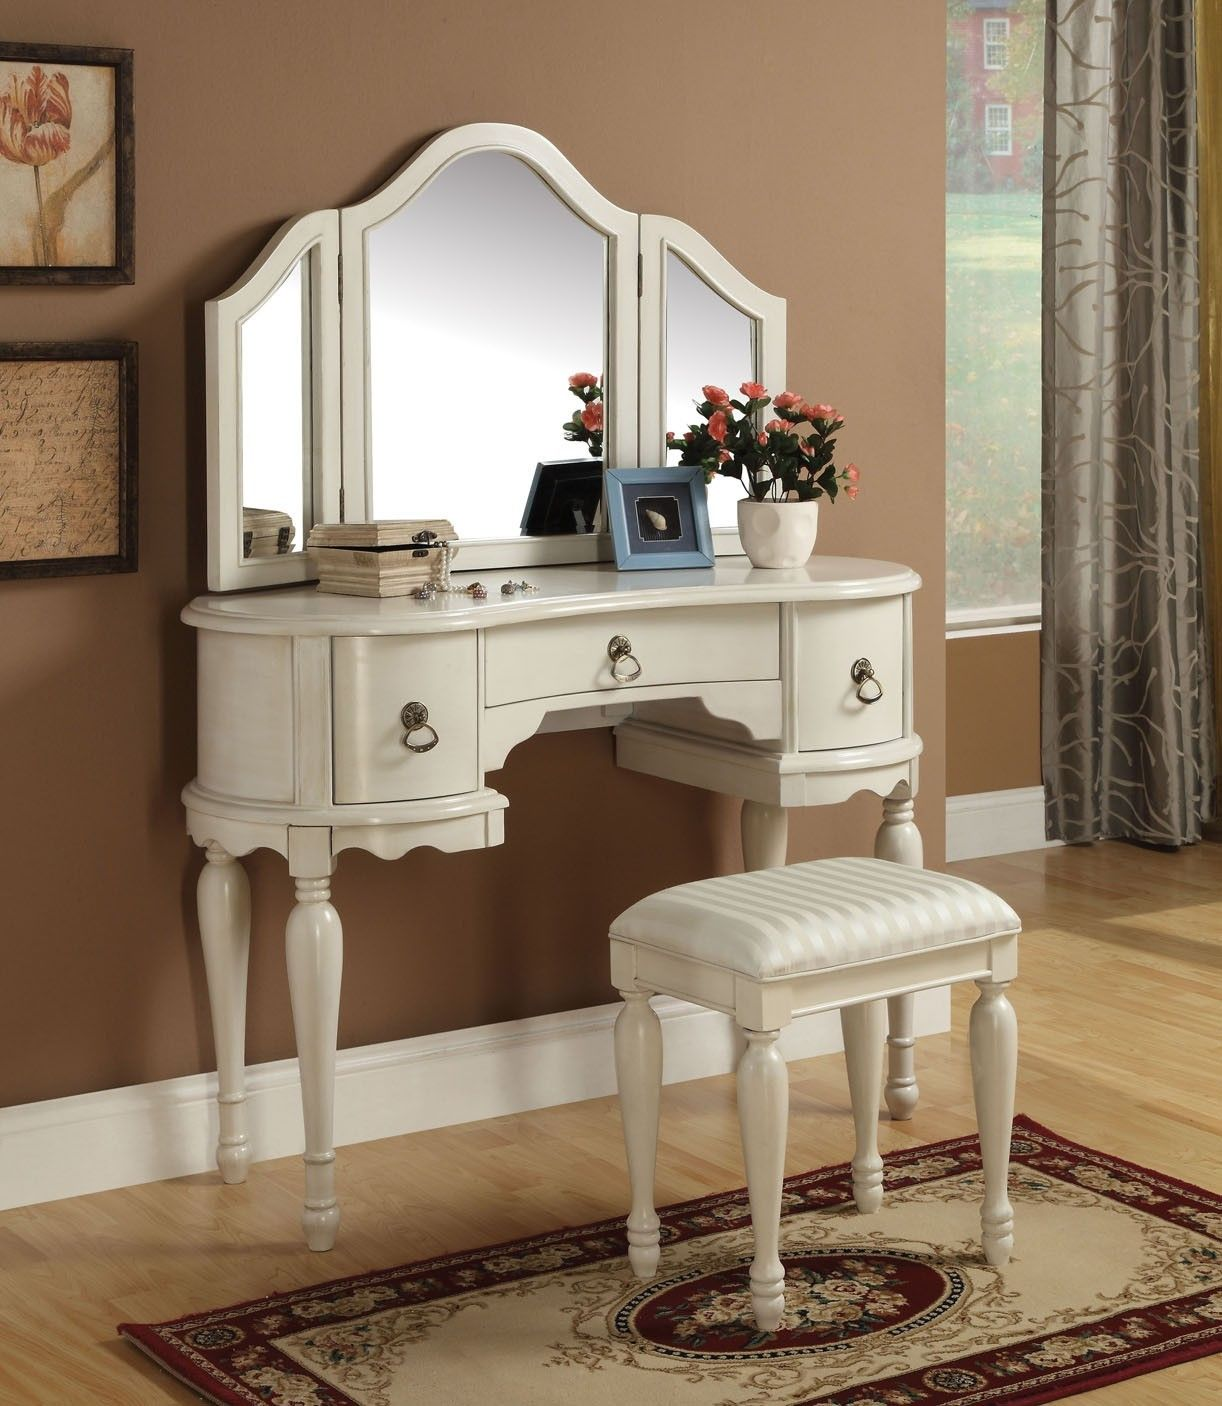 Trini 3 Pc Off White Finish Wood Make Up Dressing Table Vanity Set With  Stool And Tri Fold Mirror Acme 90024 3Pcs White Vanity Set With Stool Mirror Home